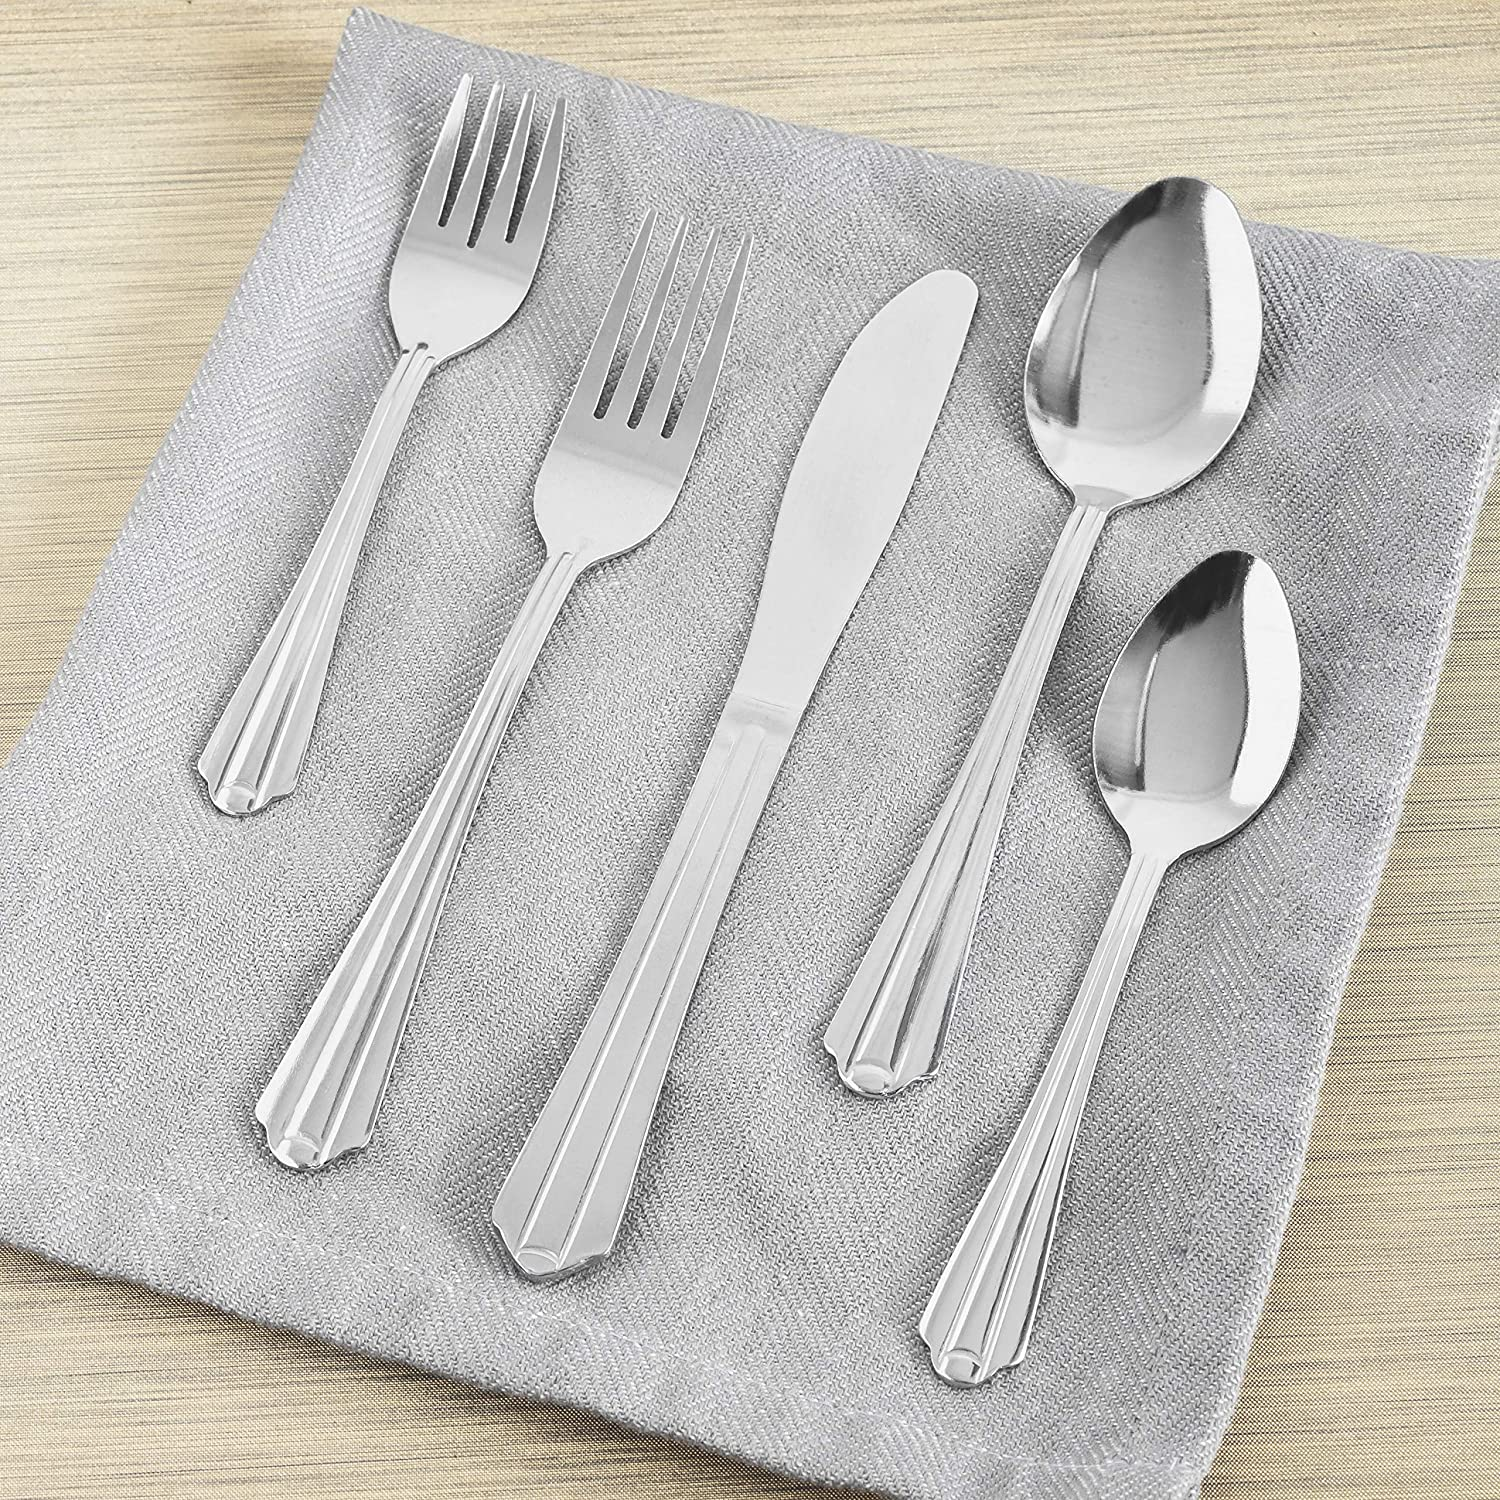 Home Basics Flatware, Stainless Steel (Avery) 20 Piece Cutlery Set, 7.62